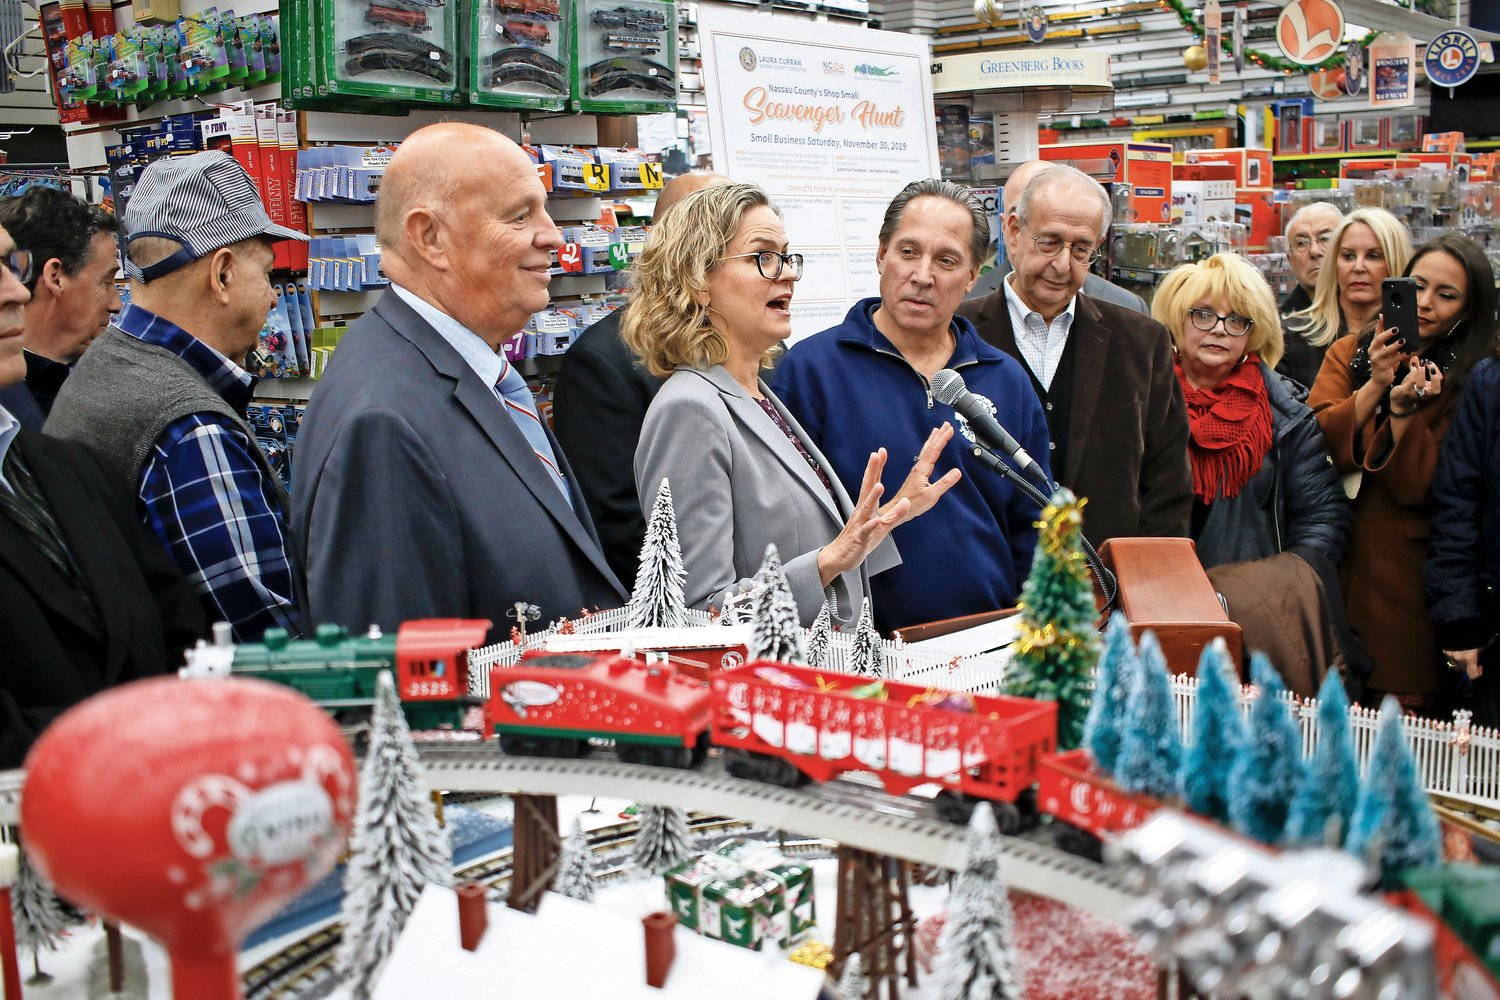 Nassau County Executive Laura Curran announced on Nov. 25 at TrainLand in Lynbrook, a Shop Local Saturday Scavenger Hunt. The first four people to complete the hunt will win prizes.